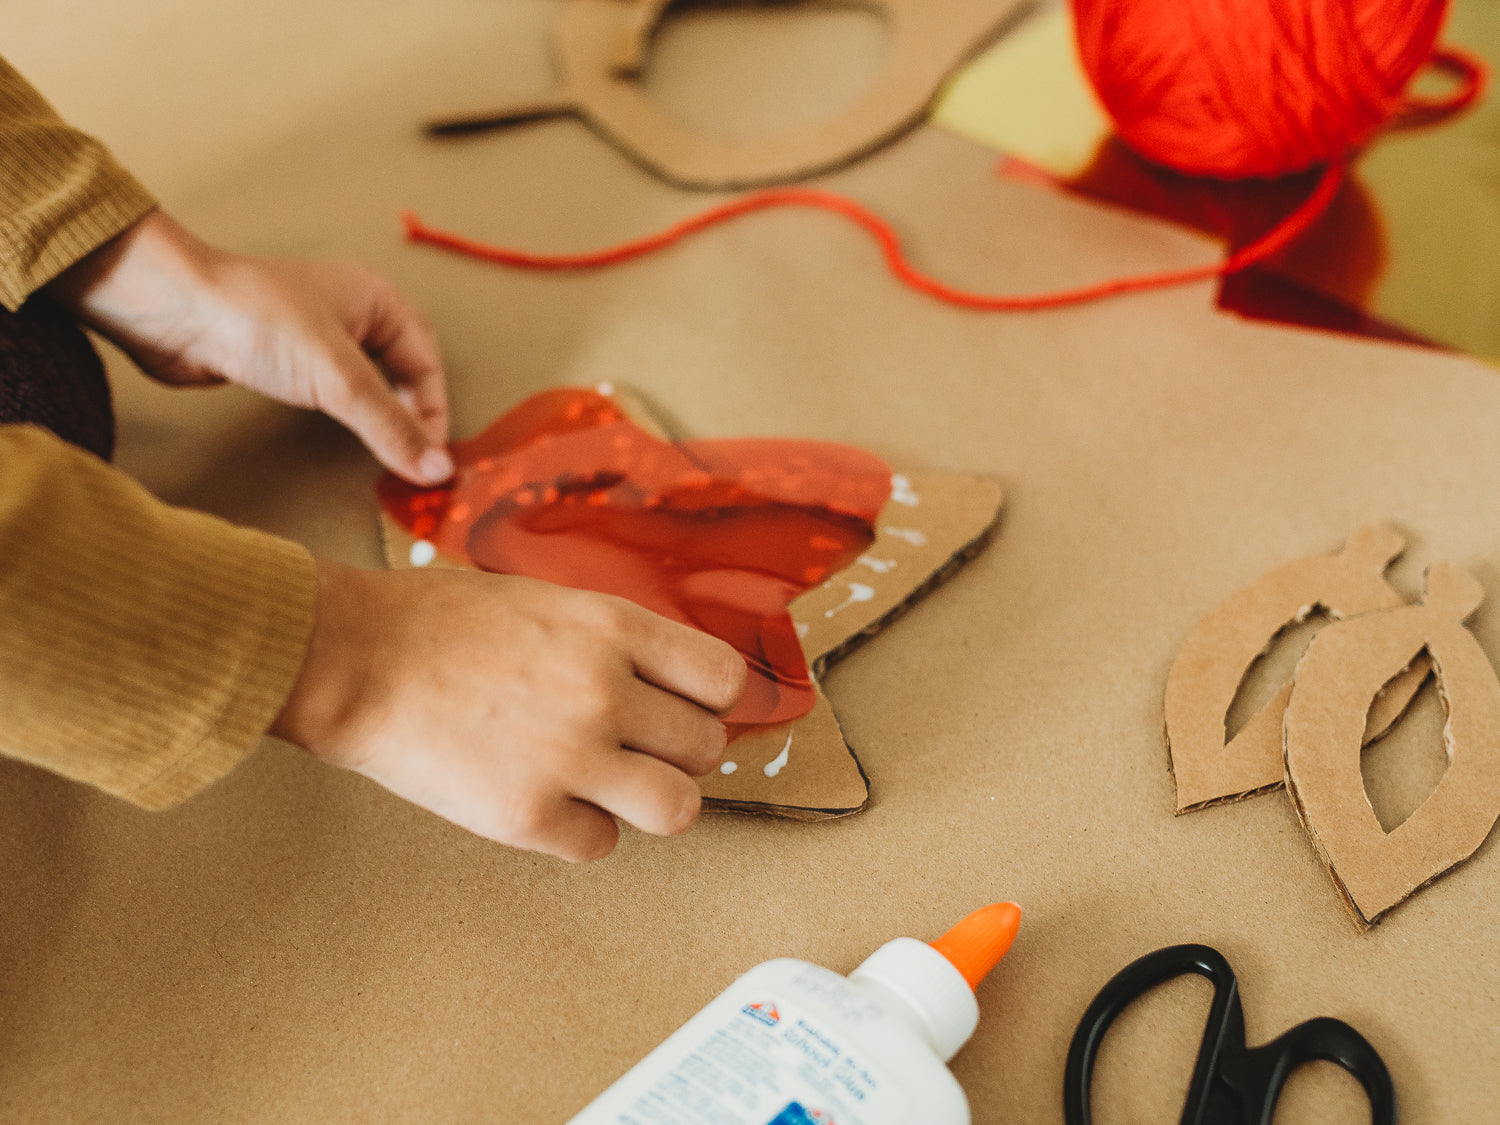 A child glues biodegradable red cellophane to cardboard for an eco-friendly fall craft project.